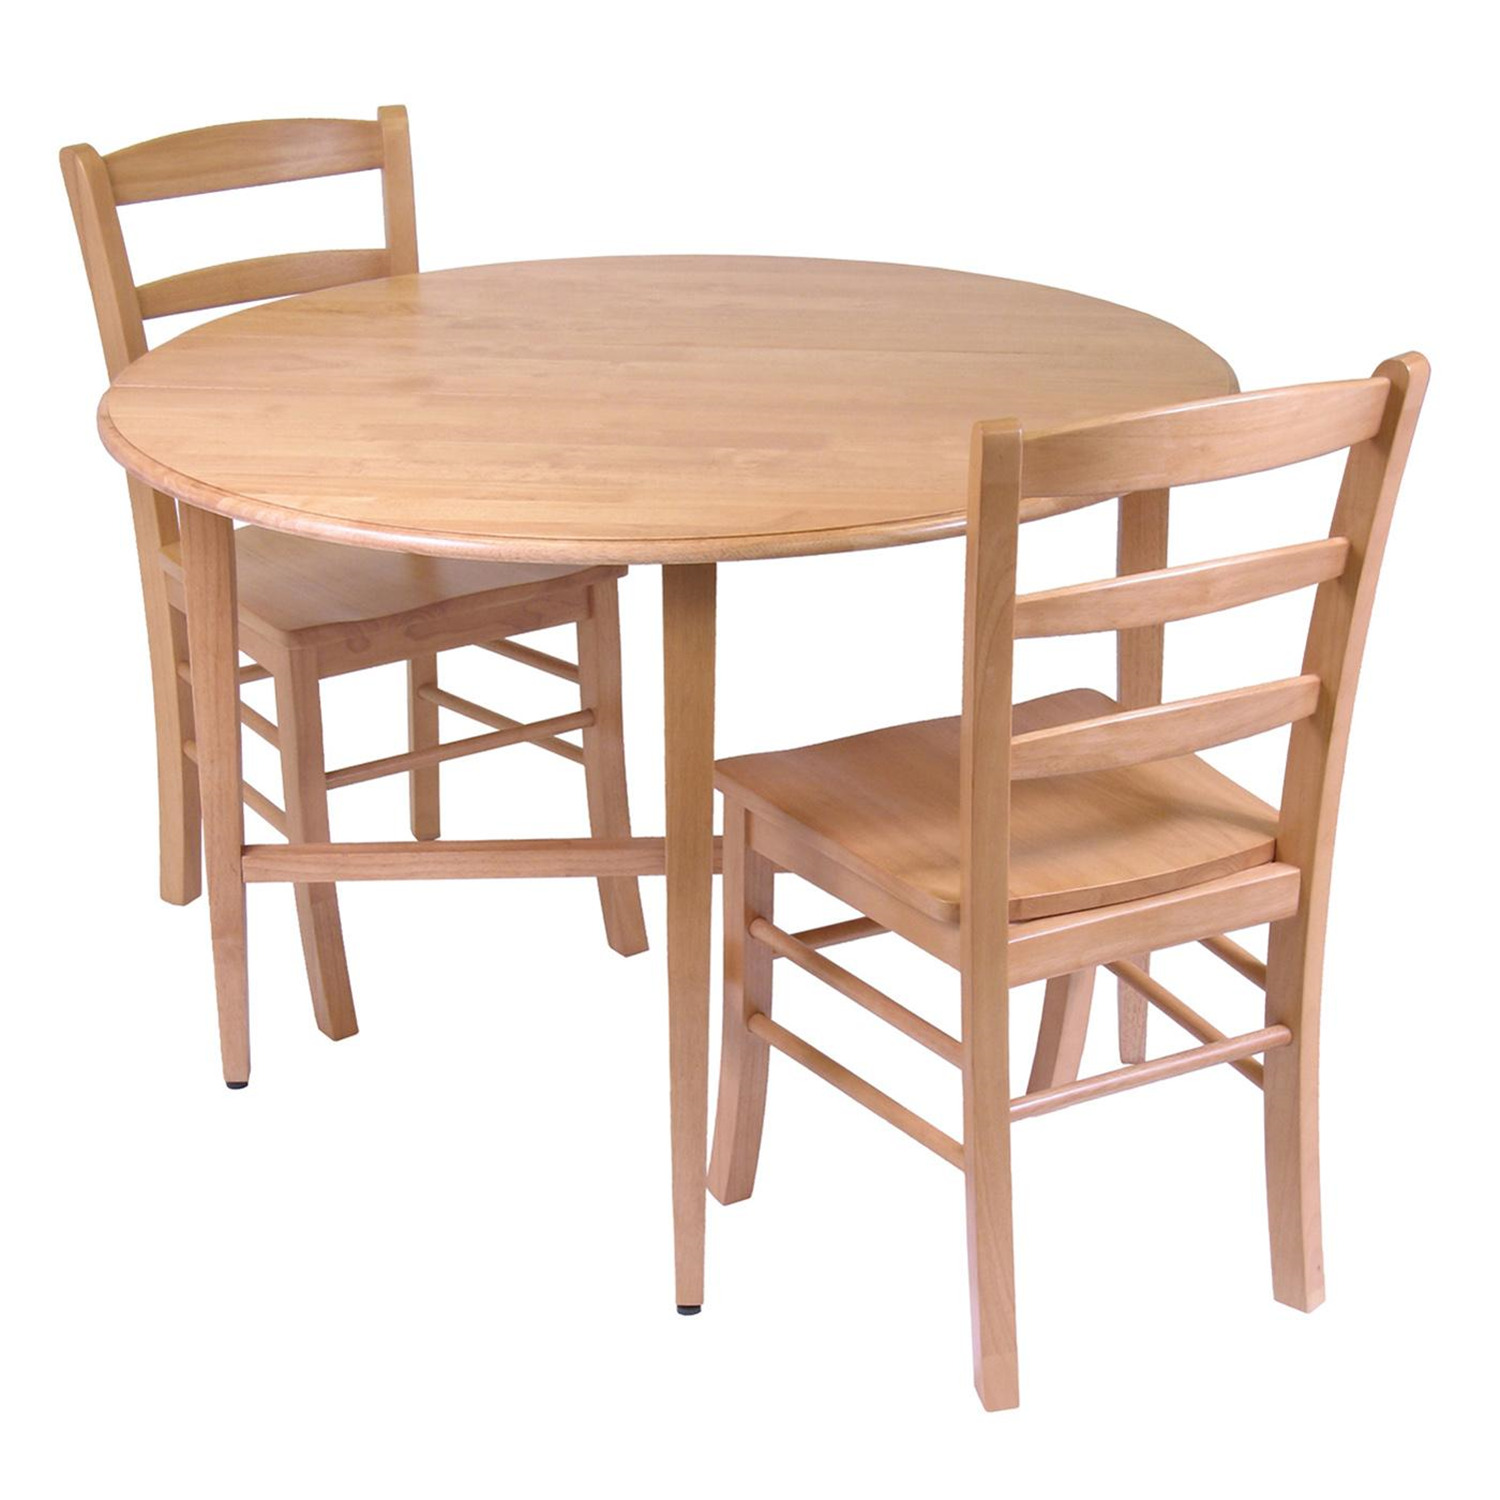 east west furniture 5pc kitchen round table with 2 drop leaves and - Round Pine Kitchen Table